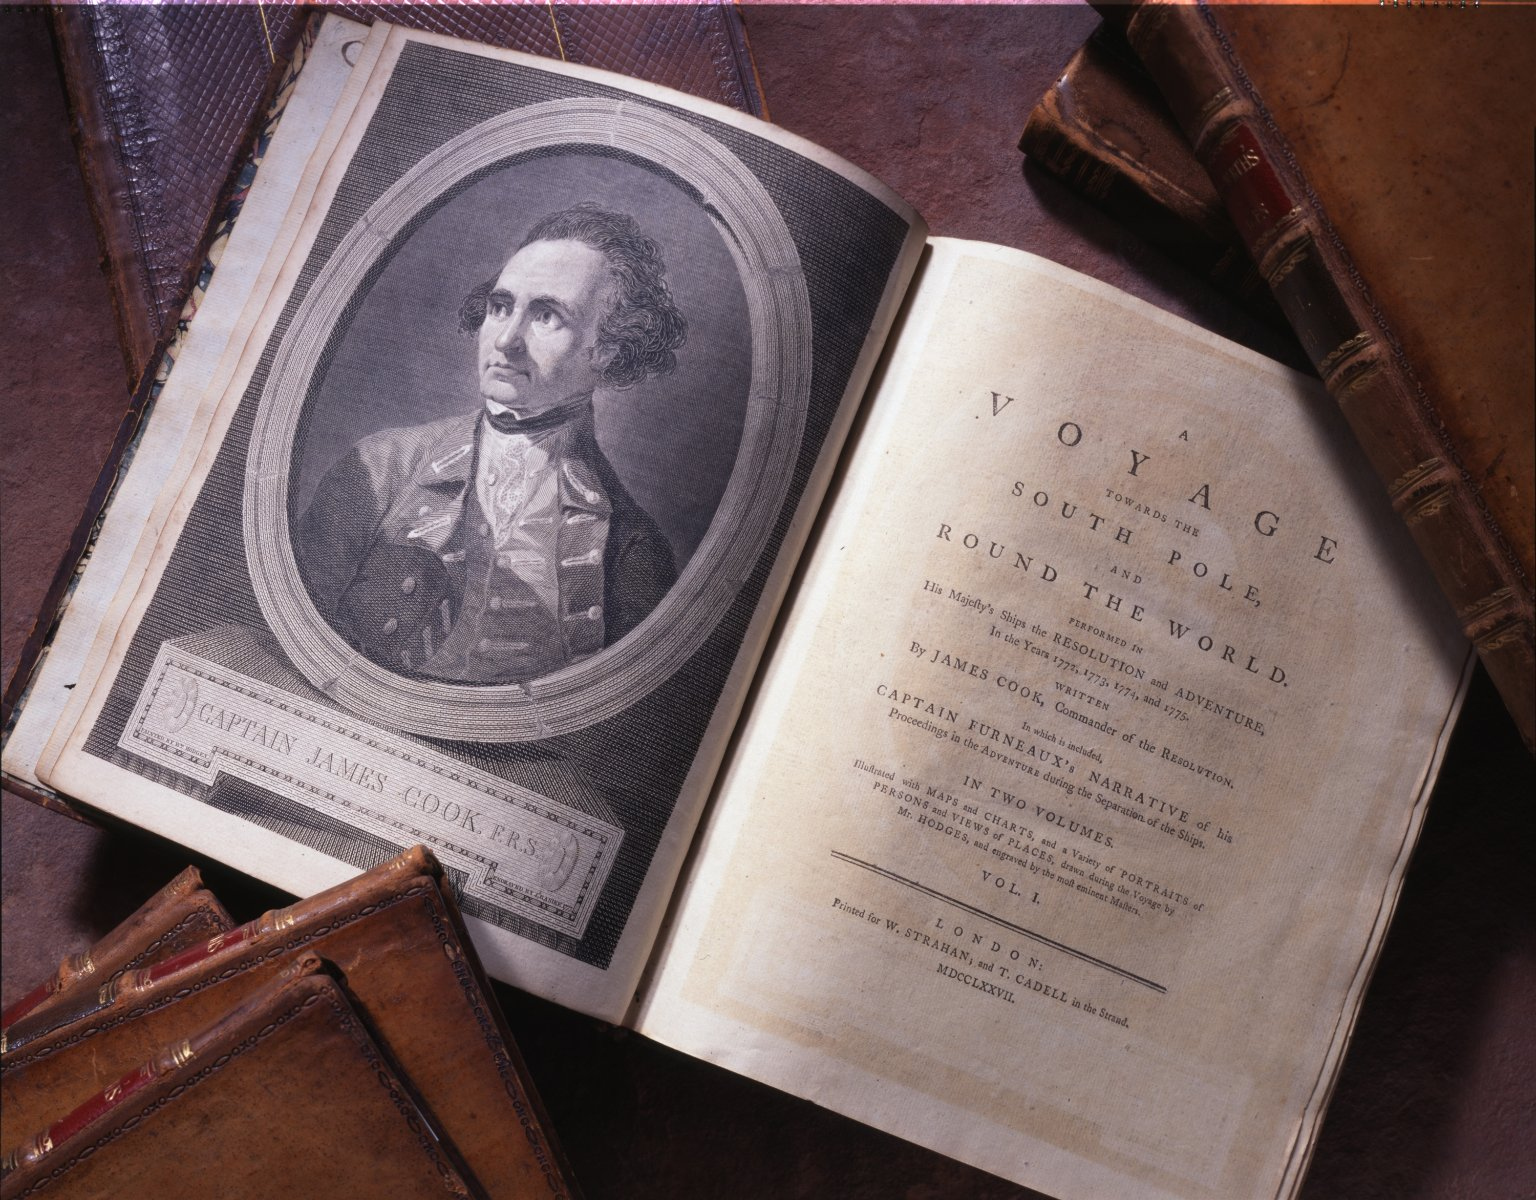 Set of books from Captain James Cook's Voyage.